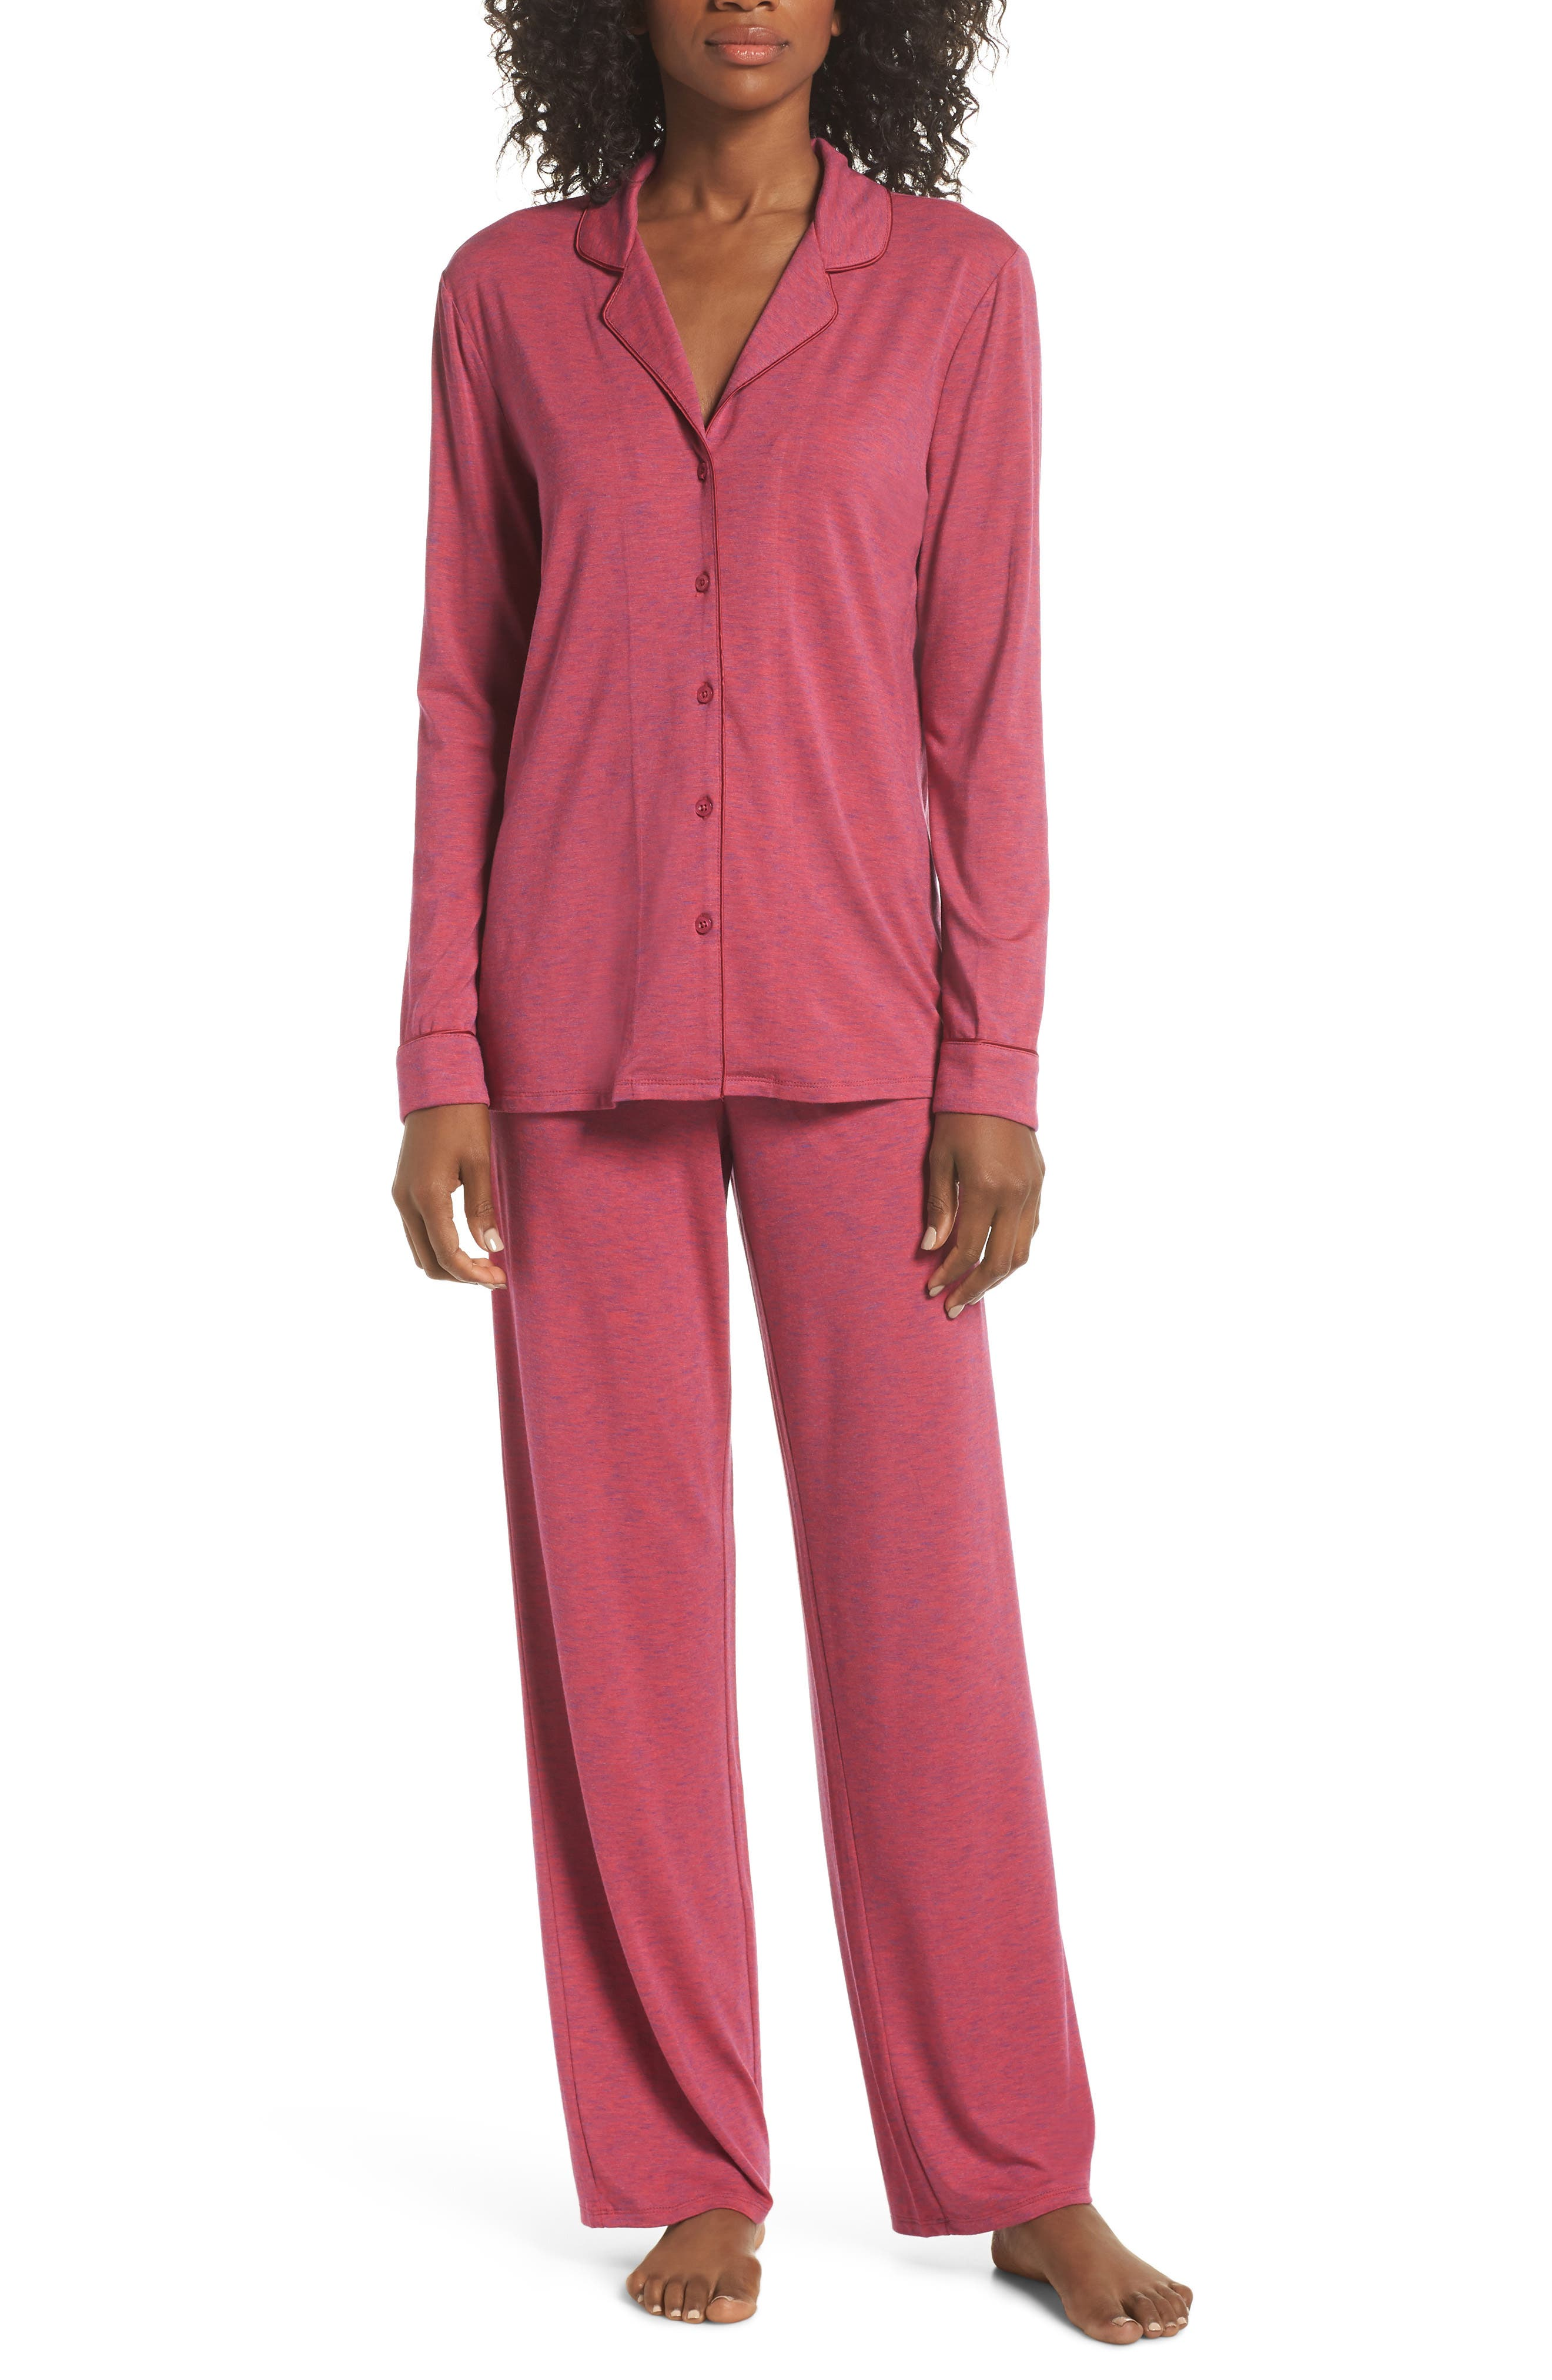 NORDSTROM LINGERIE Moonlight Pajamas, Main, color, BURGUNDY SPACEDYE